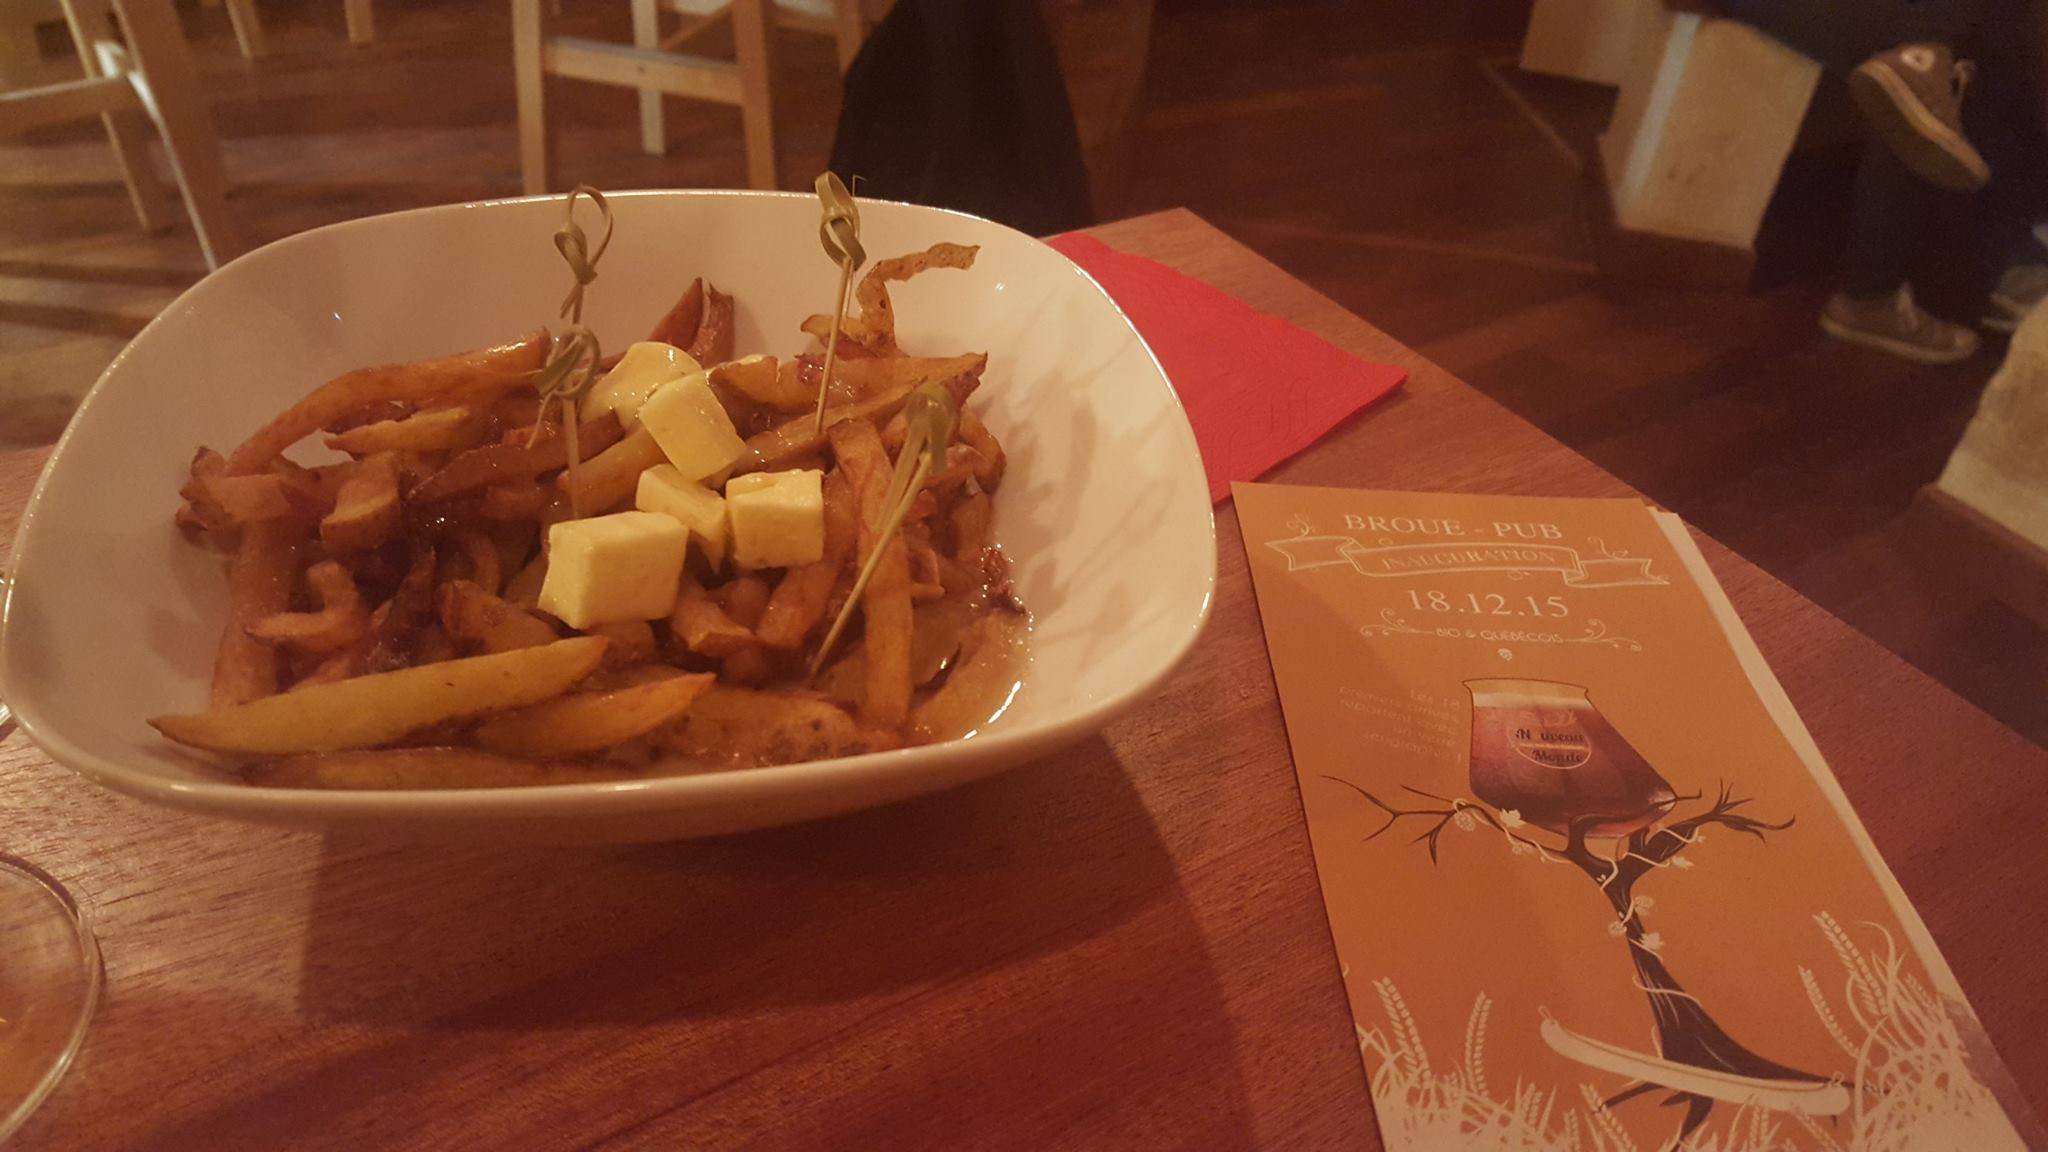 Photo 1: De la poutine à Bordeaux au Nouveau Monde